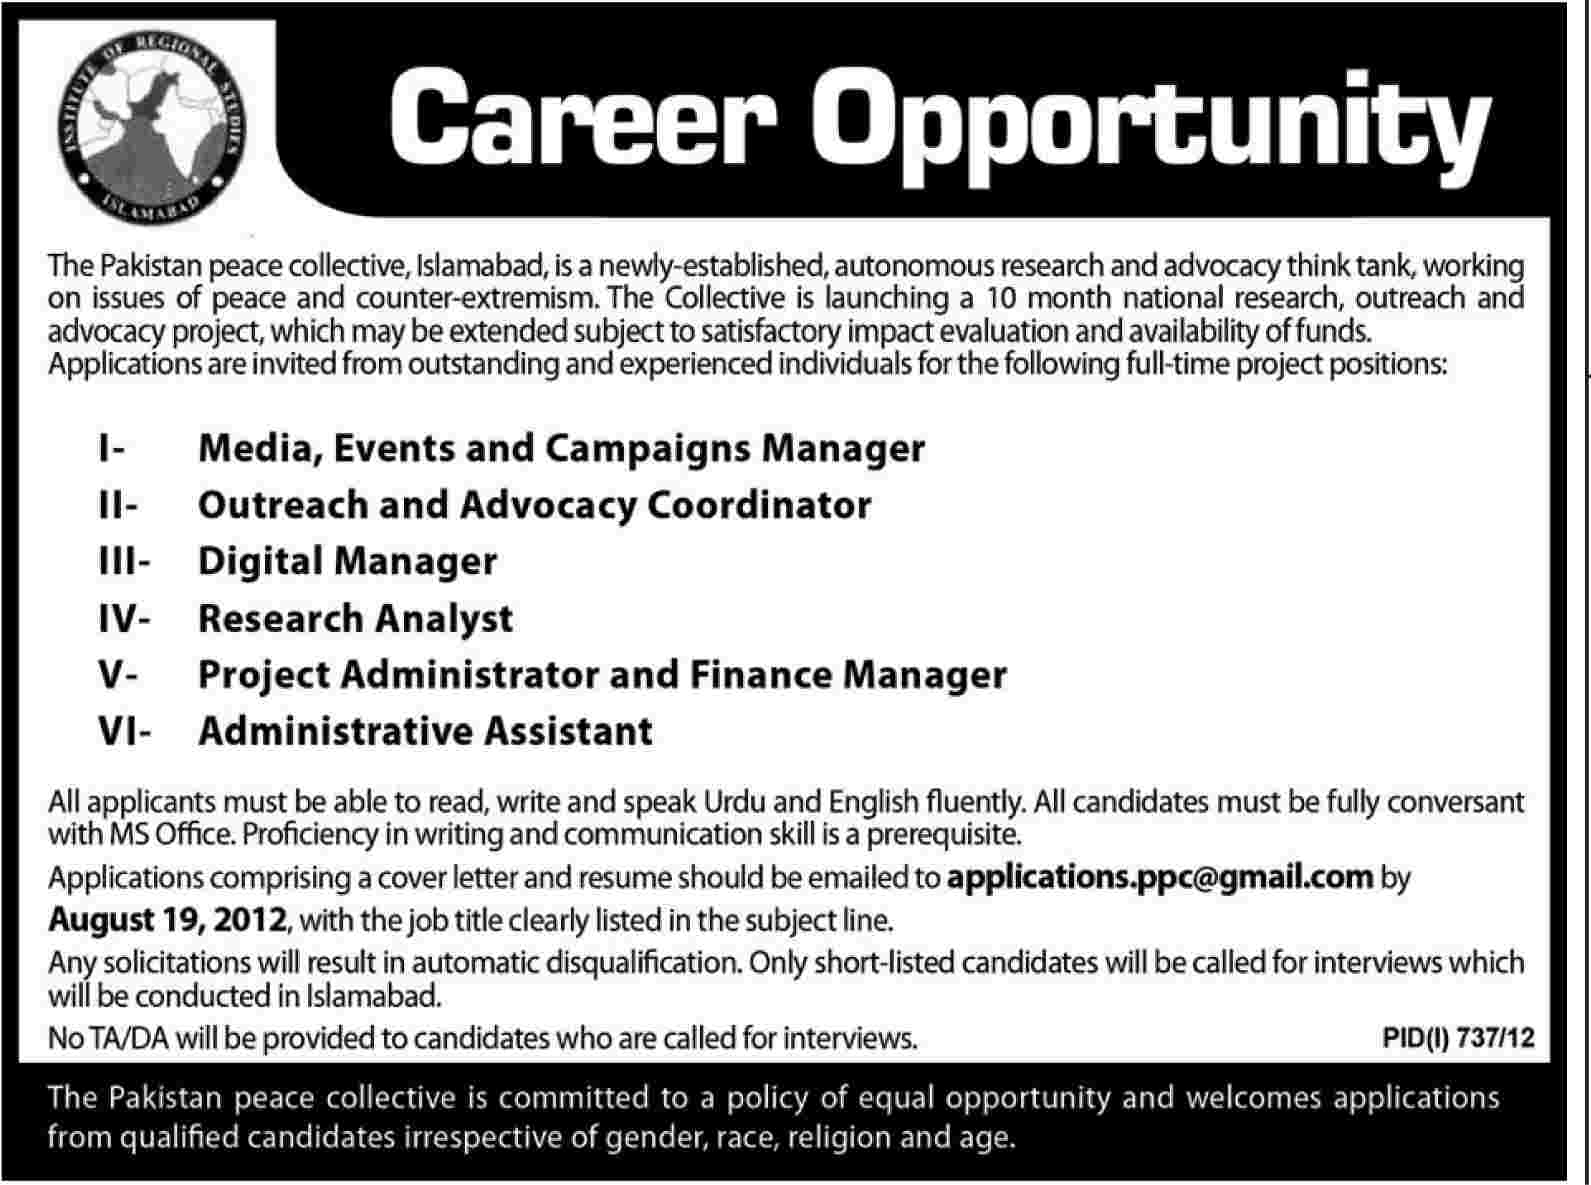 The Pakistan Peace Collective Islamabad Requires Management and Support Staff